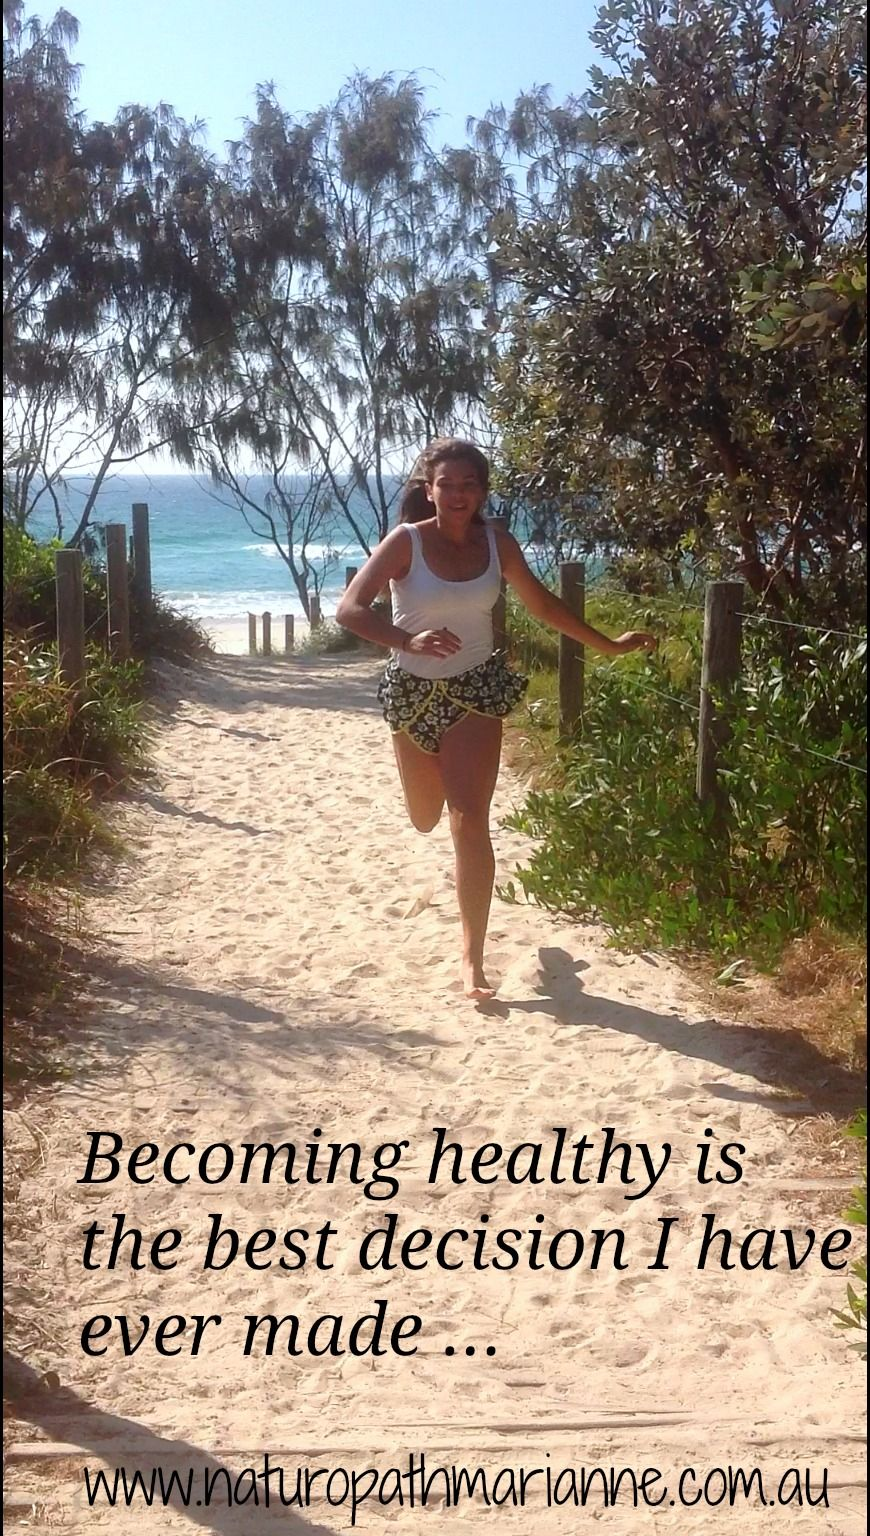 Our health is so important Naturopath, Naturopathy